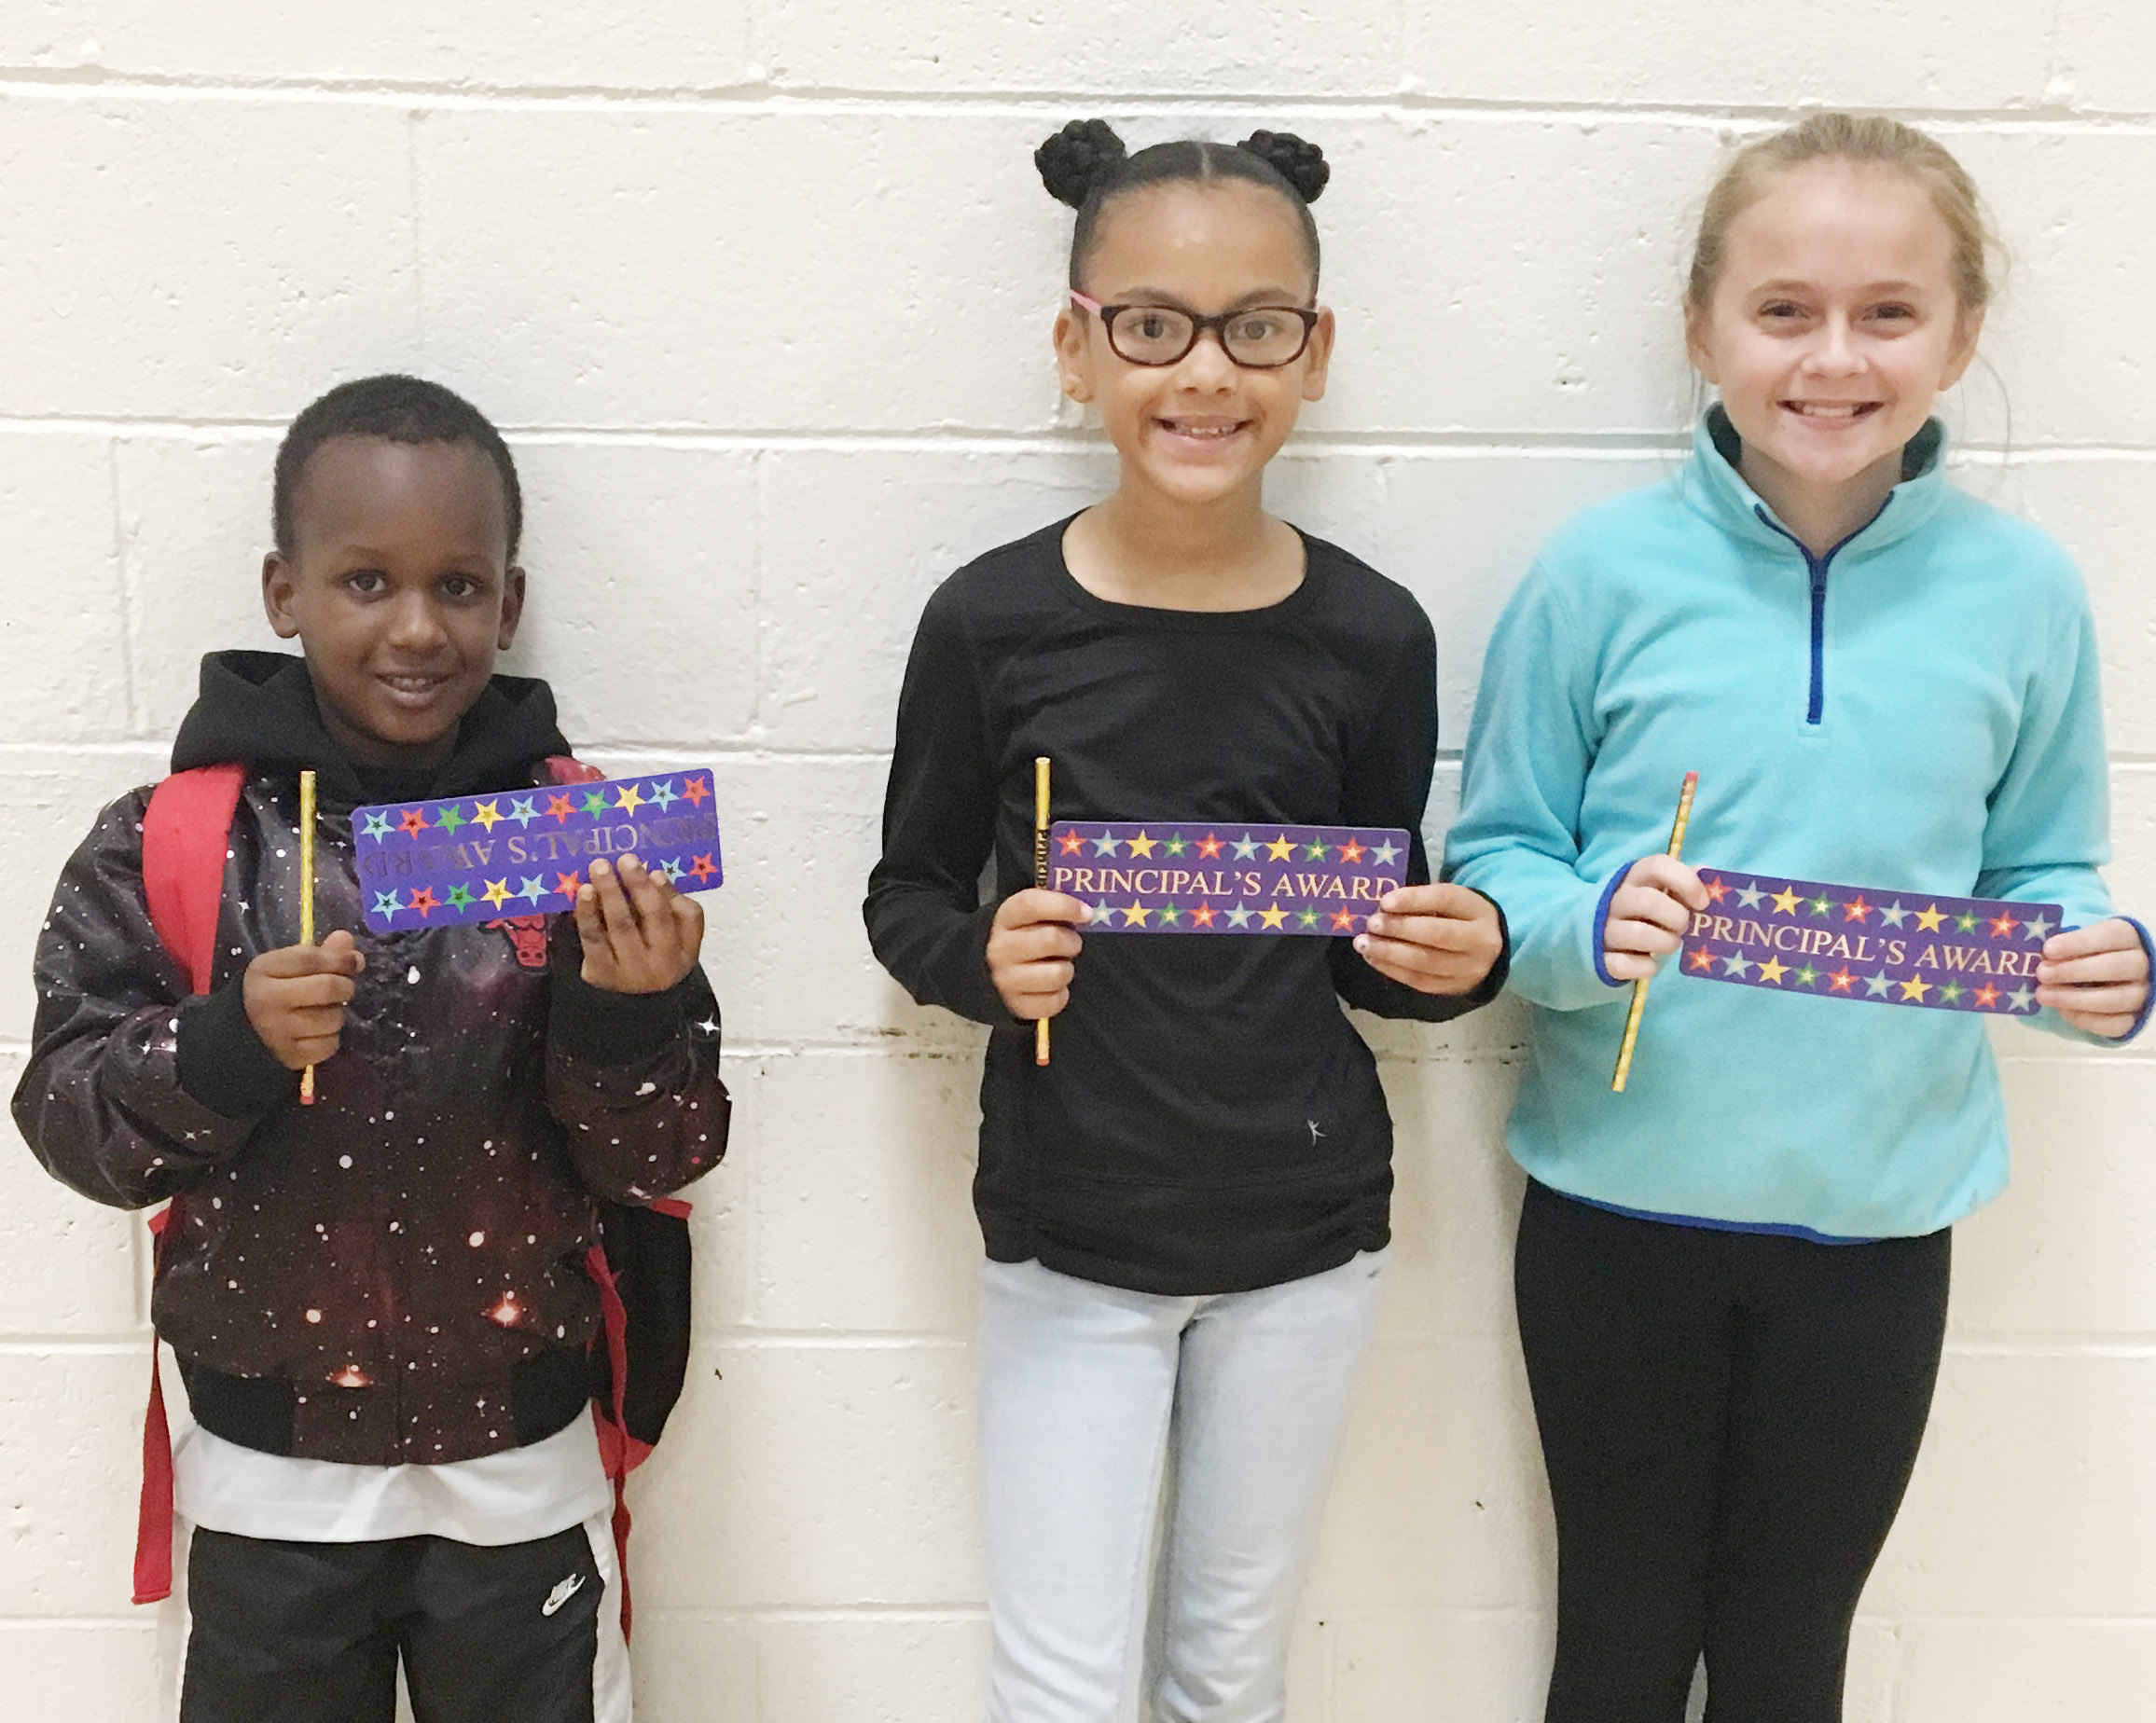 From left are kindergartener Tureal Baxter, fourth-grader Alexia Howard and fifth-grader Kennedy Griffiths. Absent from the photo are first-grader Trinity Dye, second-grader Mason Edwards and third-grader Enoch Smith.